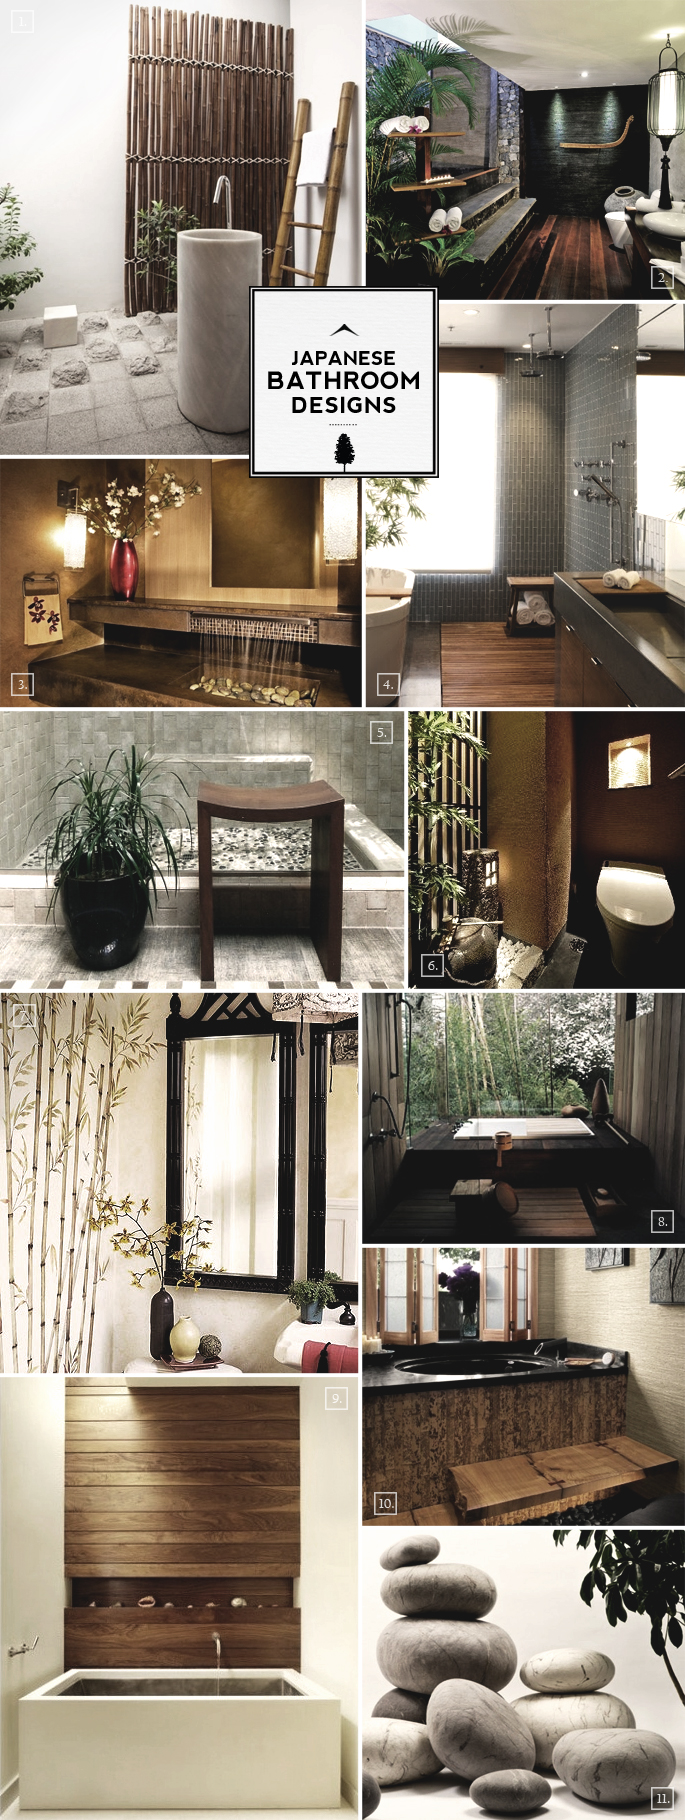 Zen style japanese bathroom design ideas home tree atlas for Zen type bedroom ideas